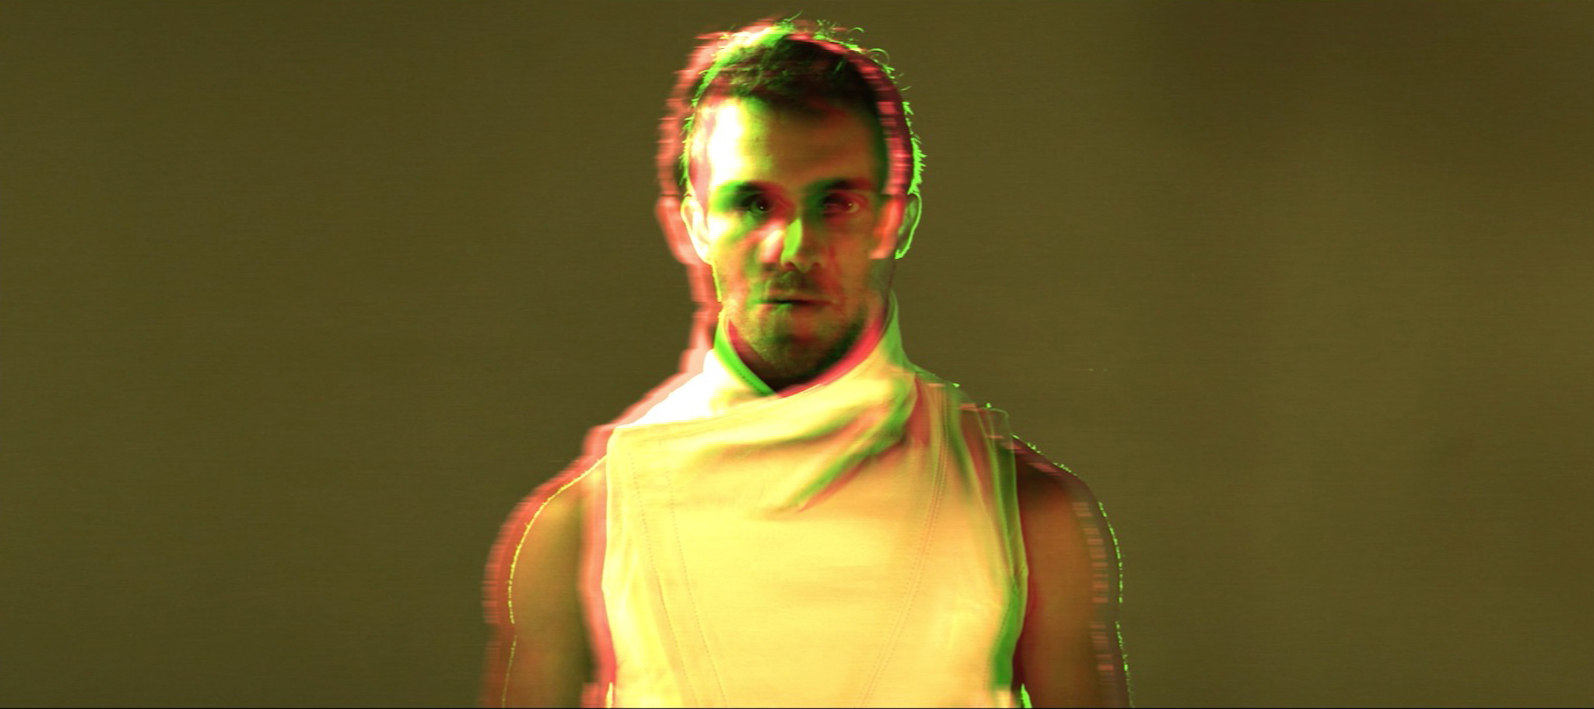 ALPINE UNIVERSE SERVES NEXT LEVEL INTENSITY TO DRUM & BASS IN BRAND NEW VIDEO